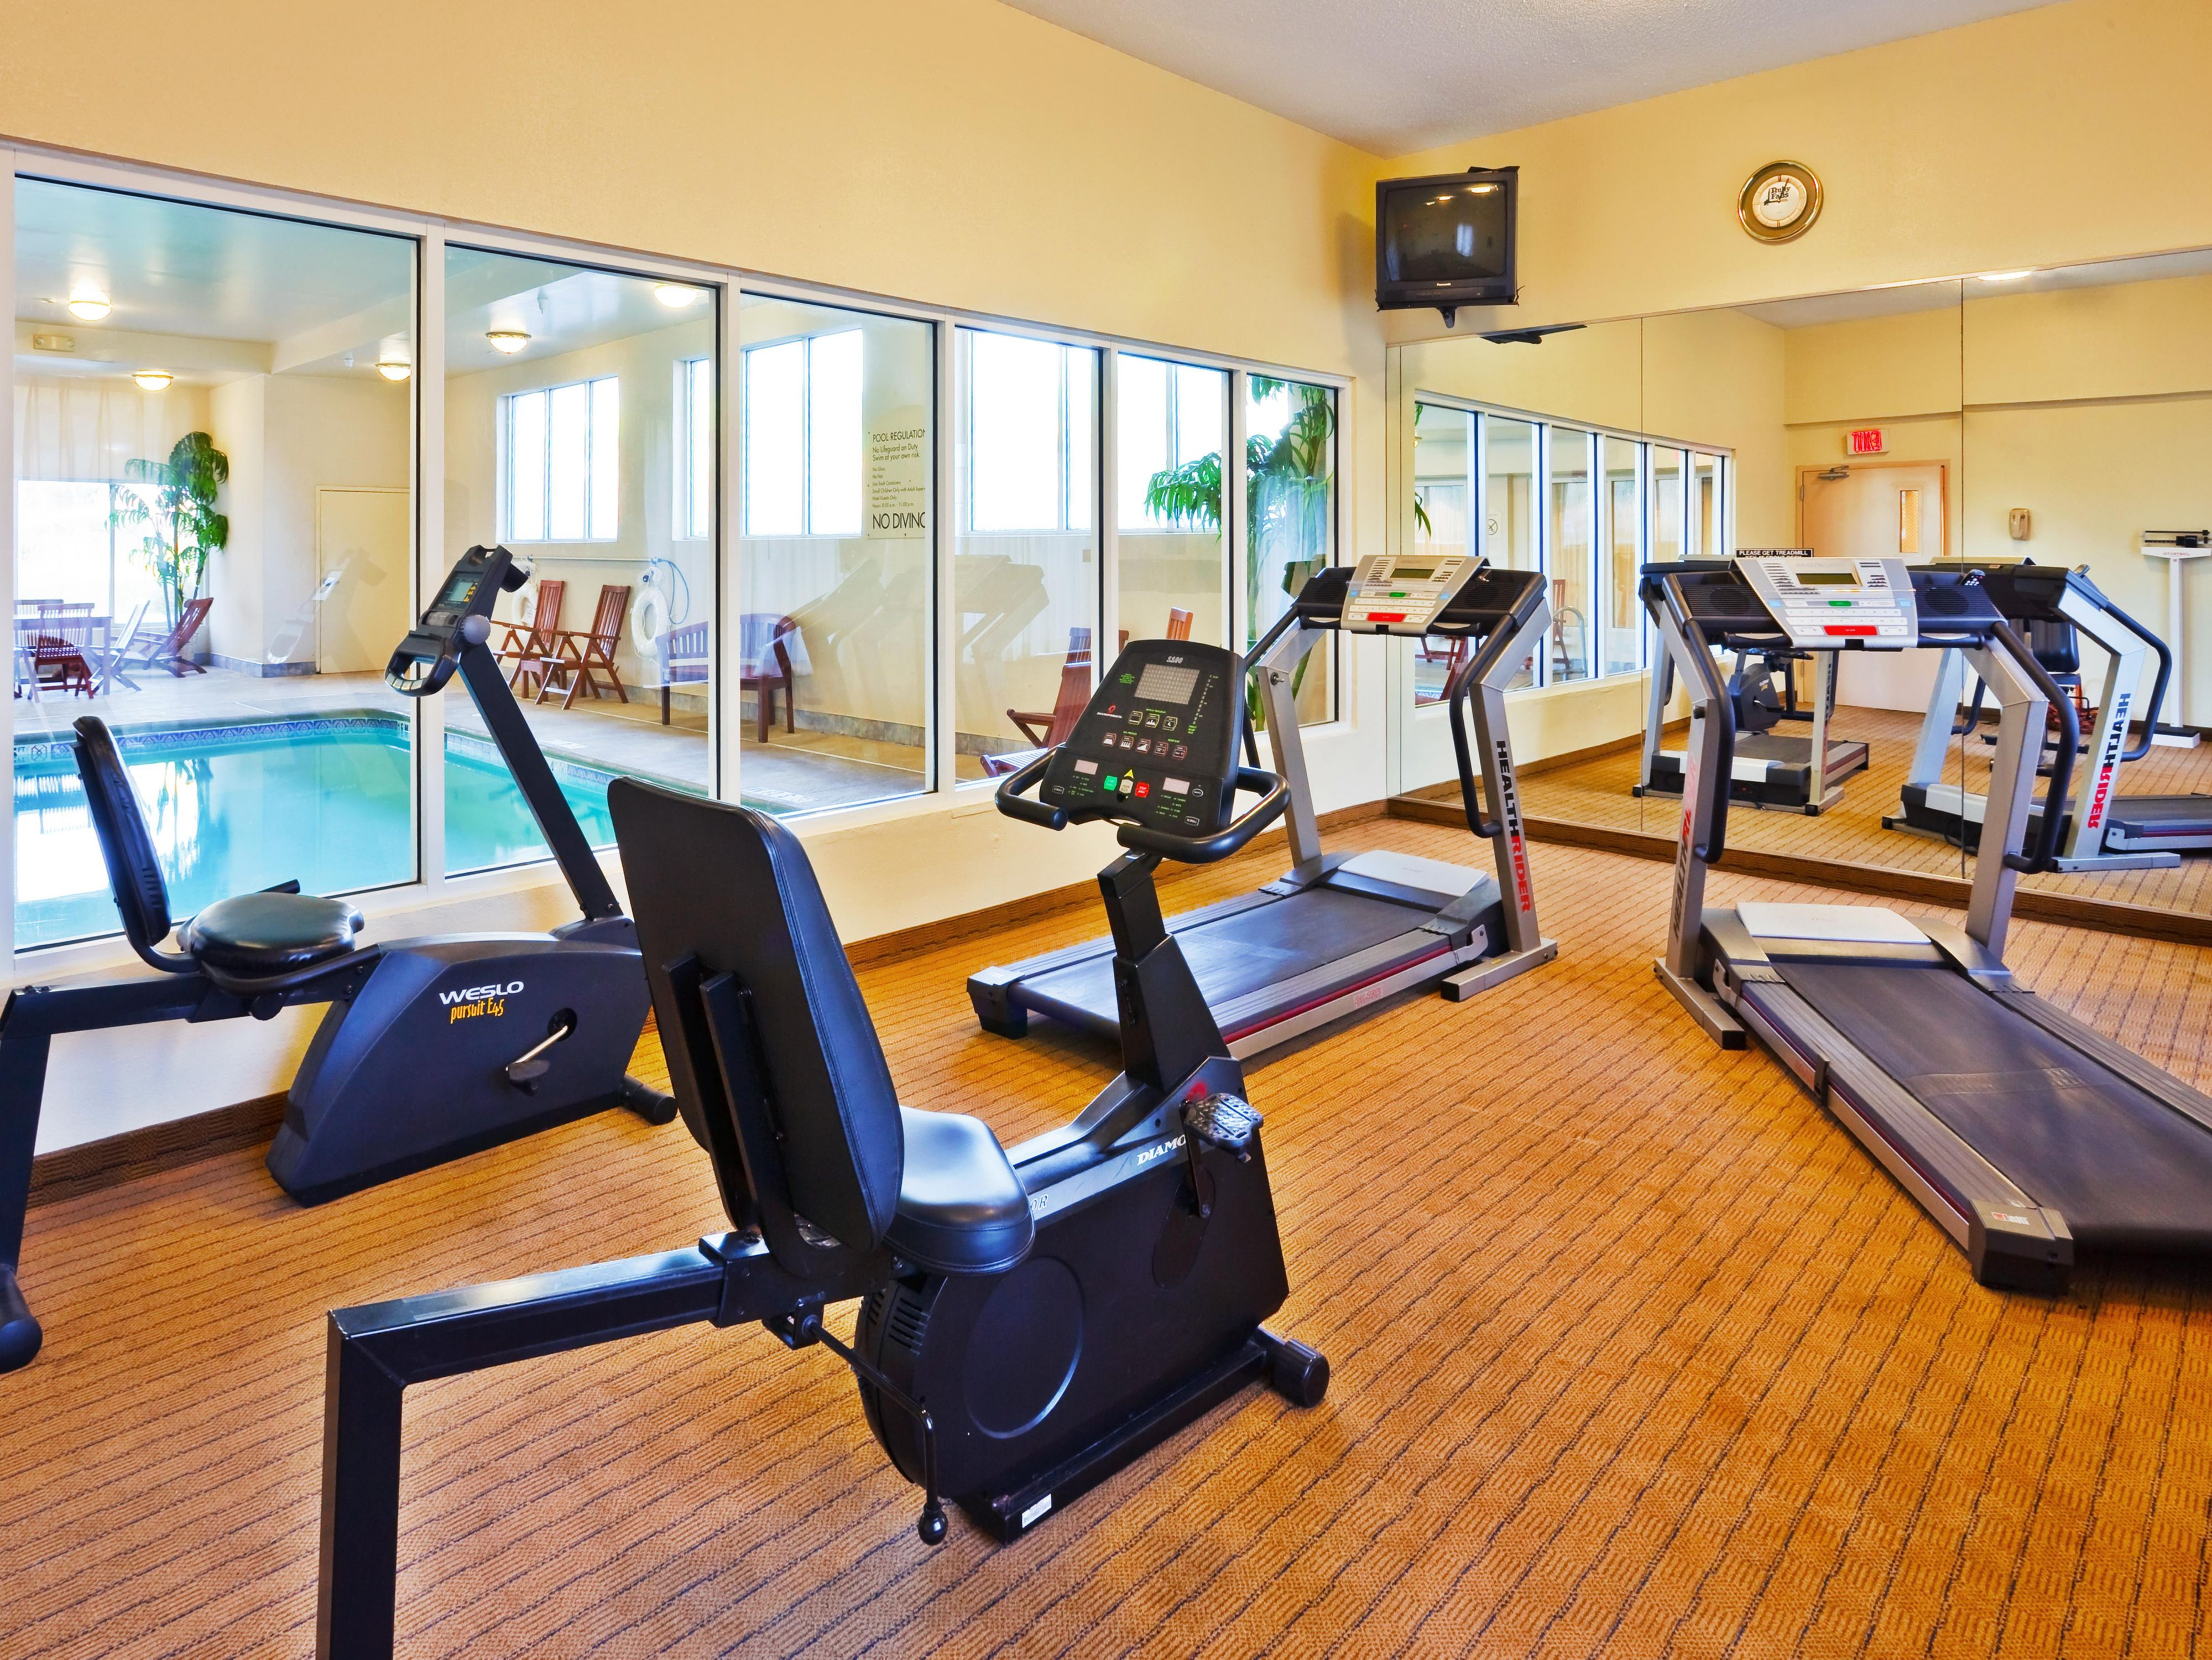 Have a quick workout in our 24-hour fitness center.